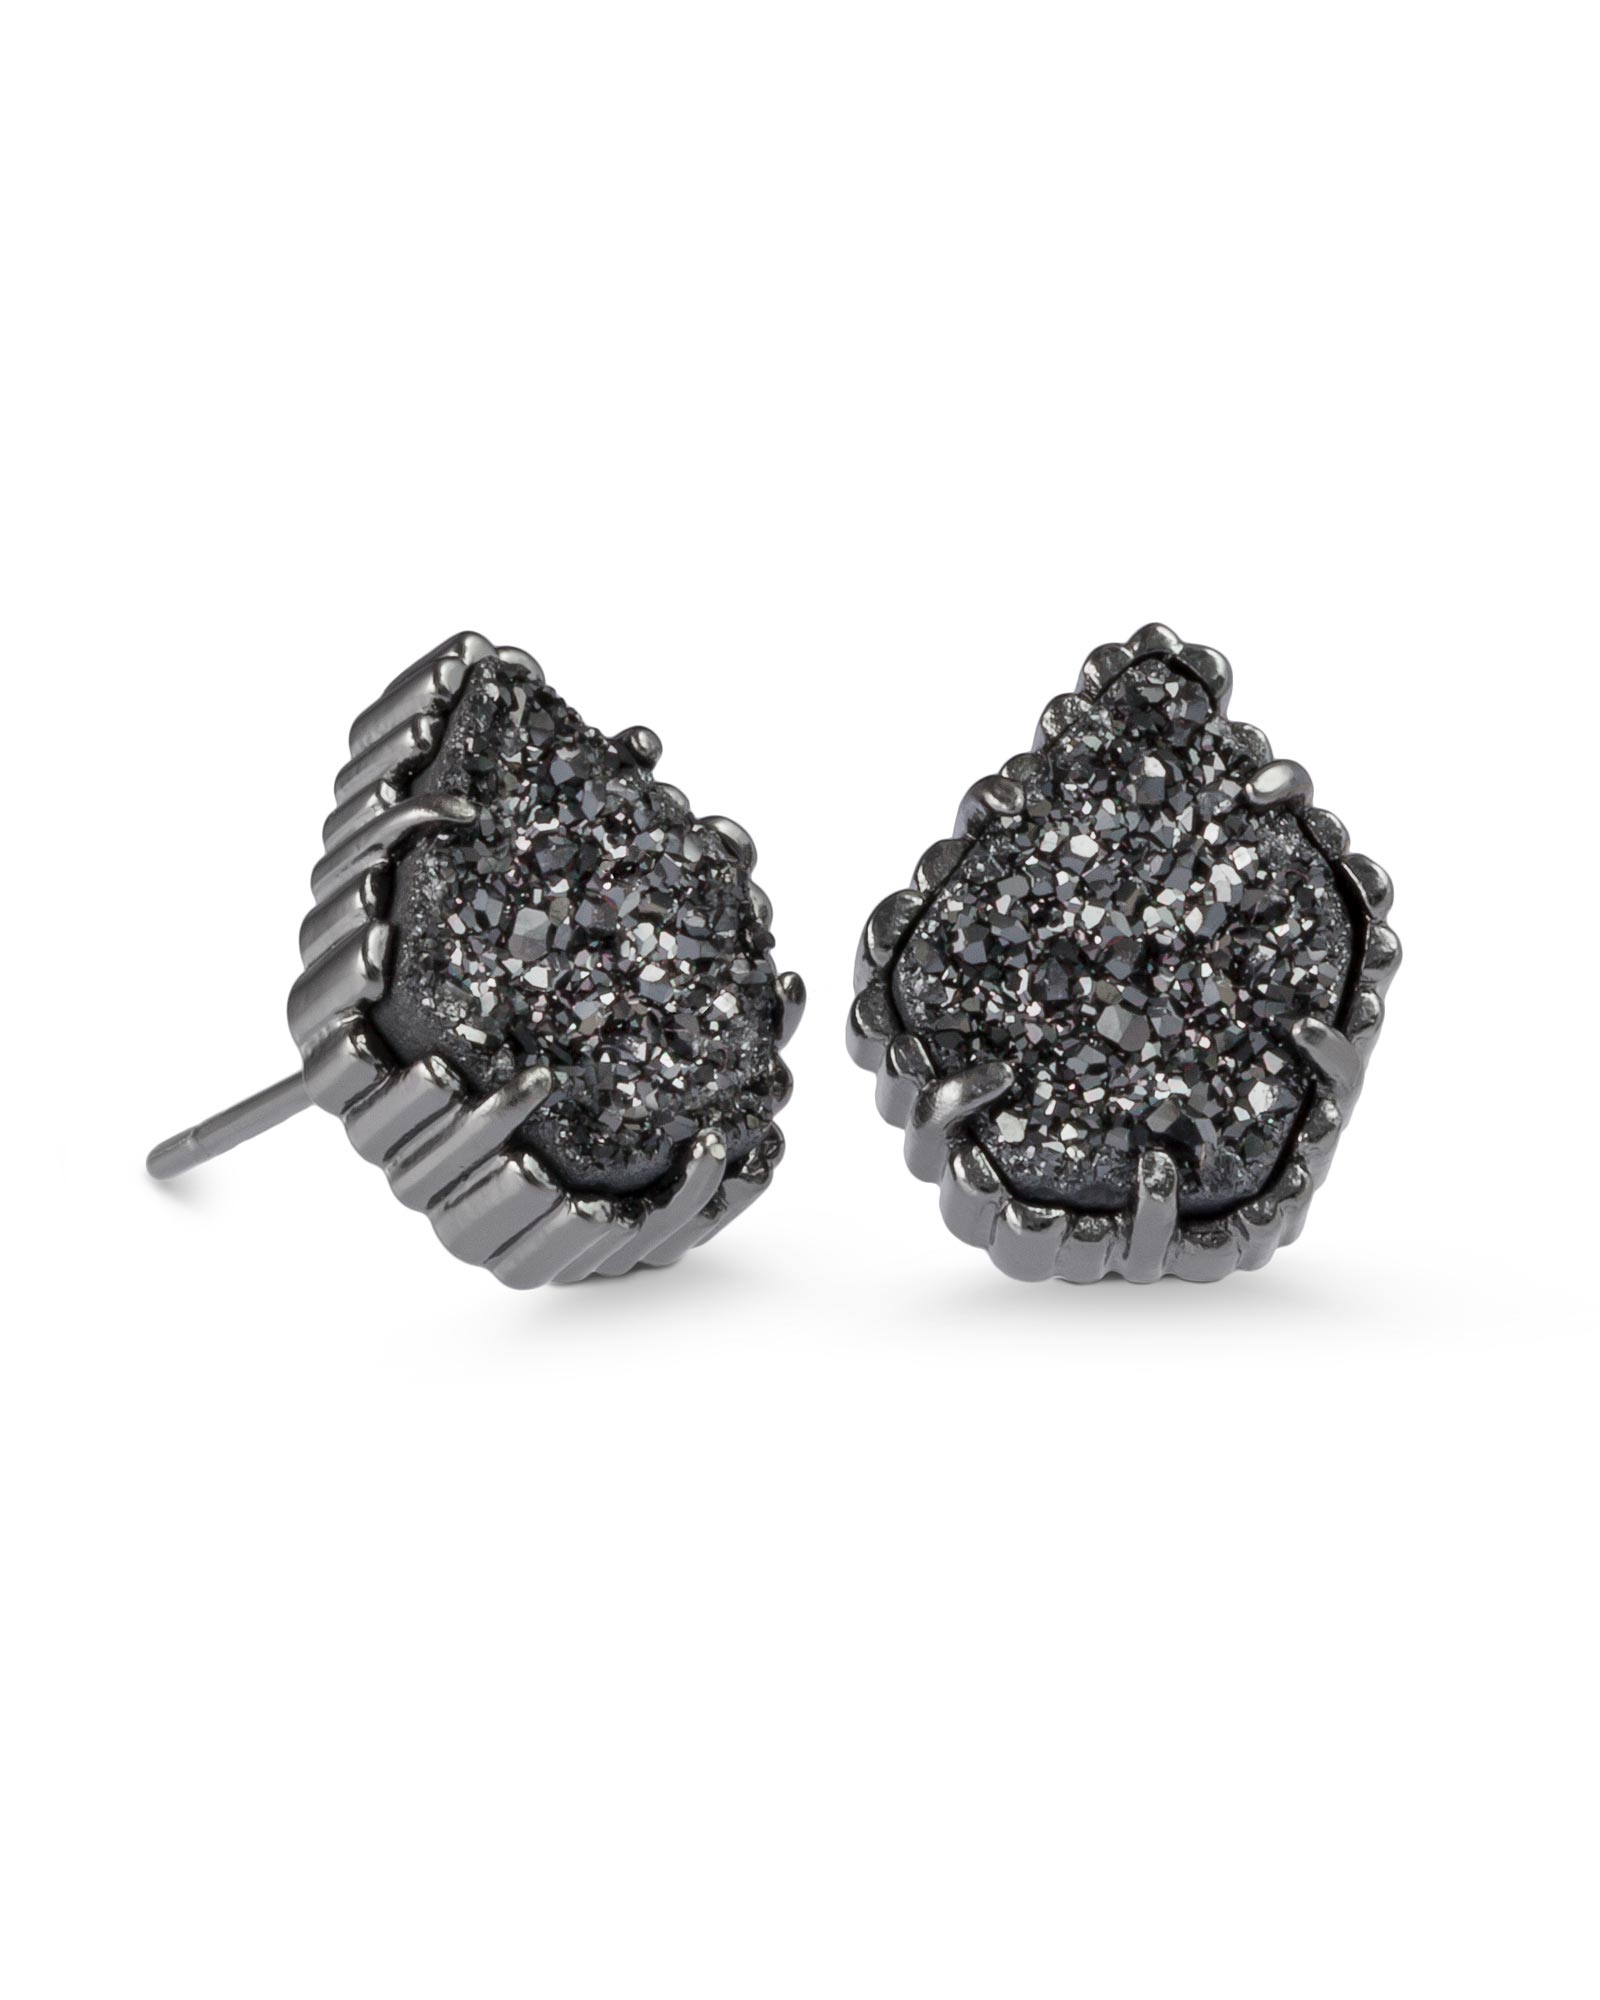 photo htm enlarge sbmp post benito diamond crystal san magdalena gunmetal clr dia earrings vsa mag cry p gm